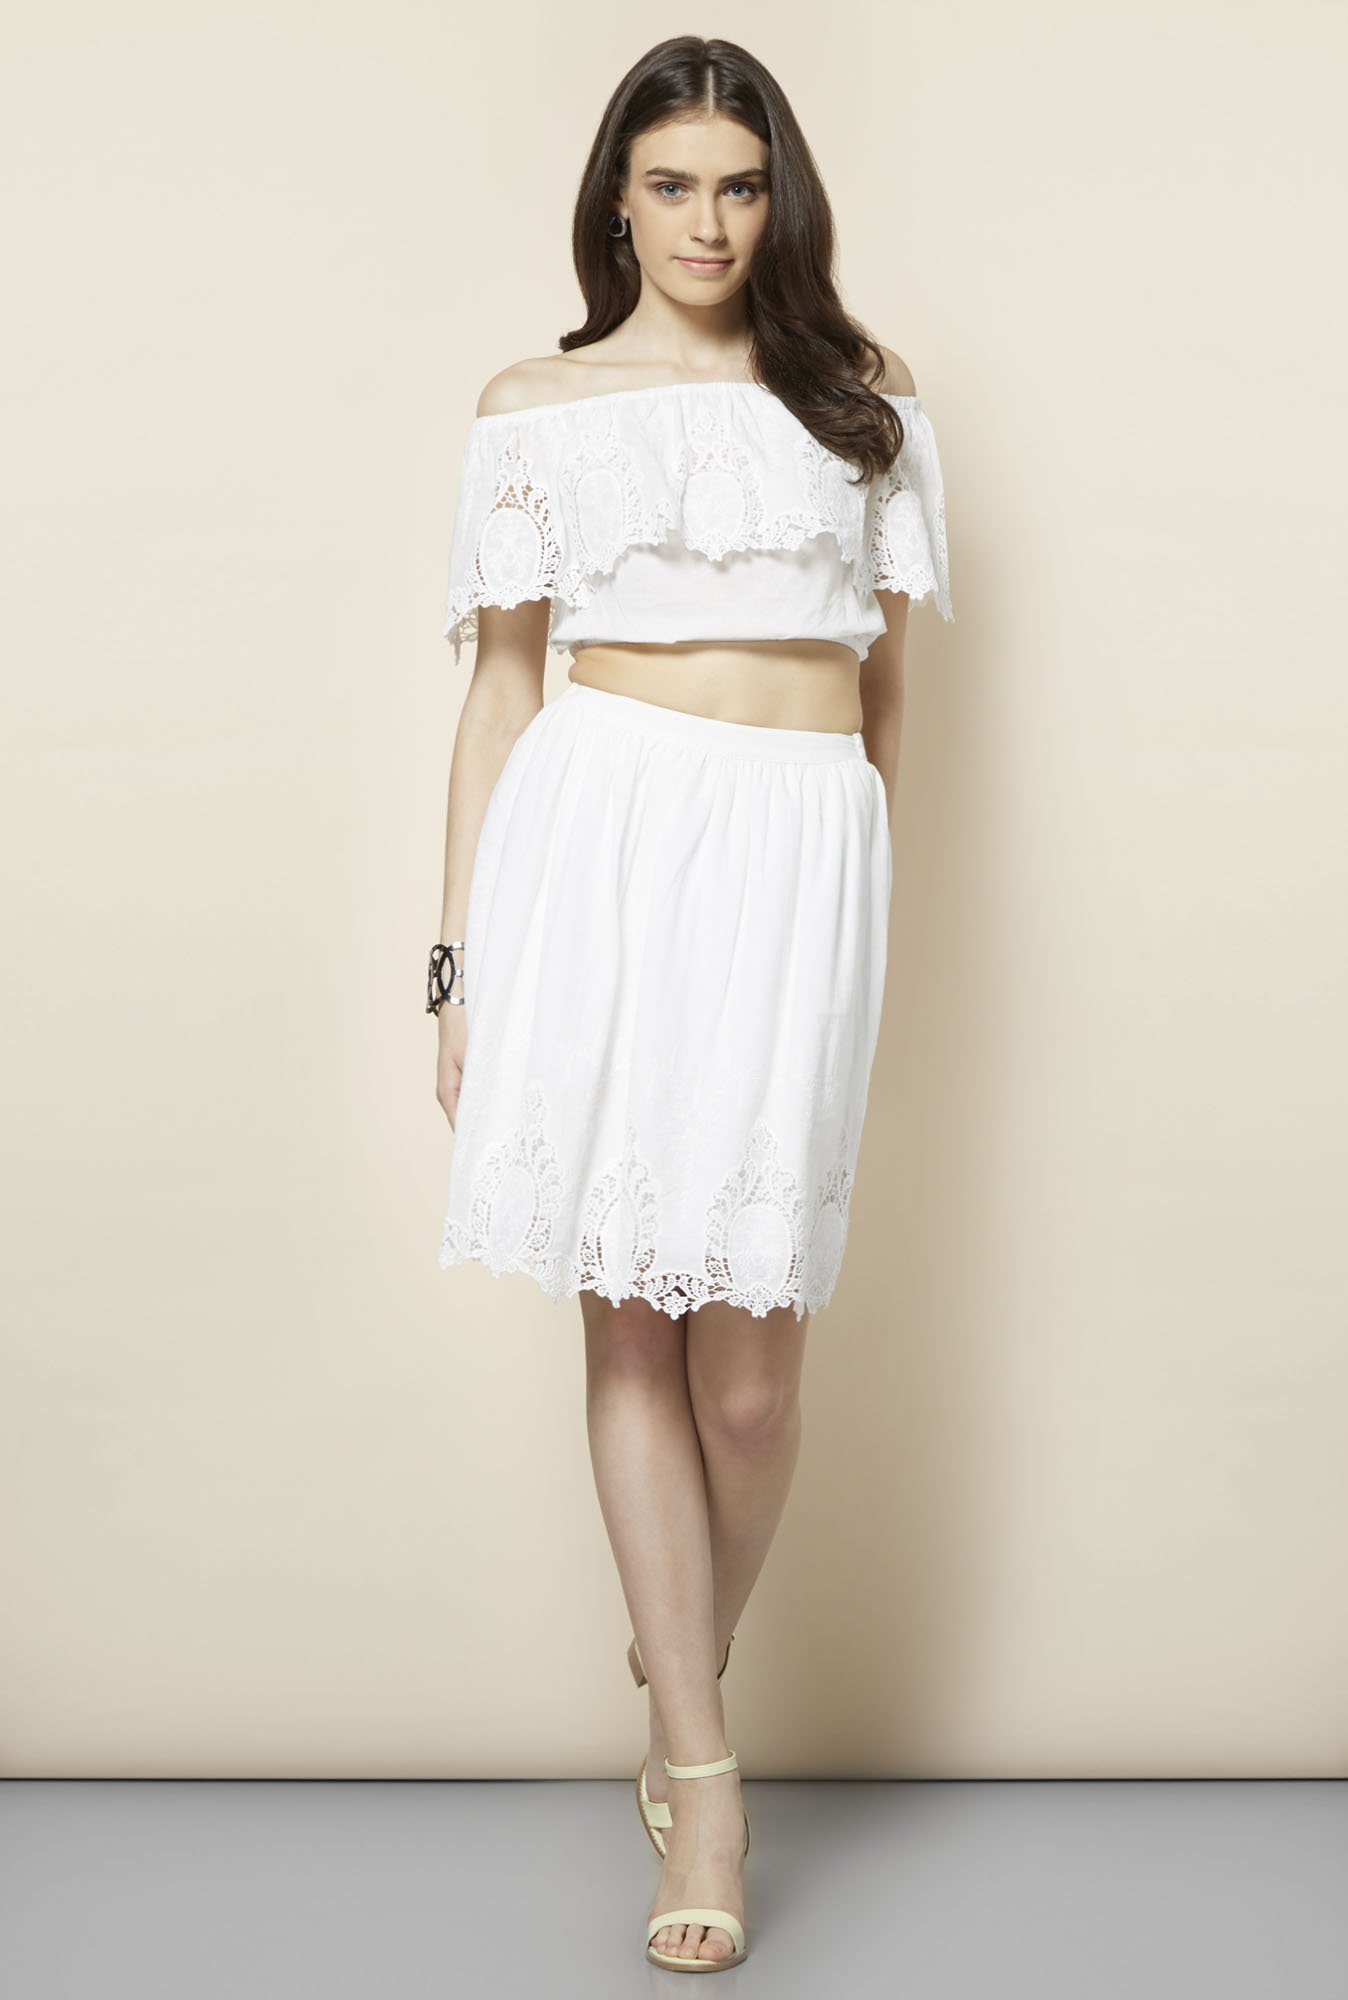 FG-4 White Embroidery Top